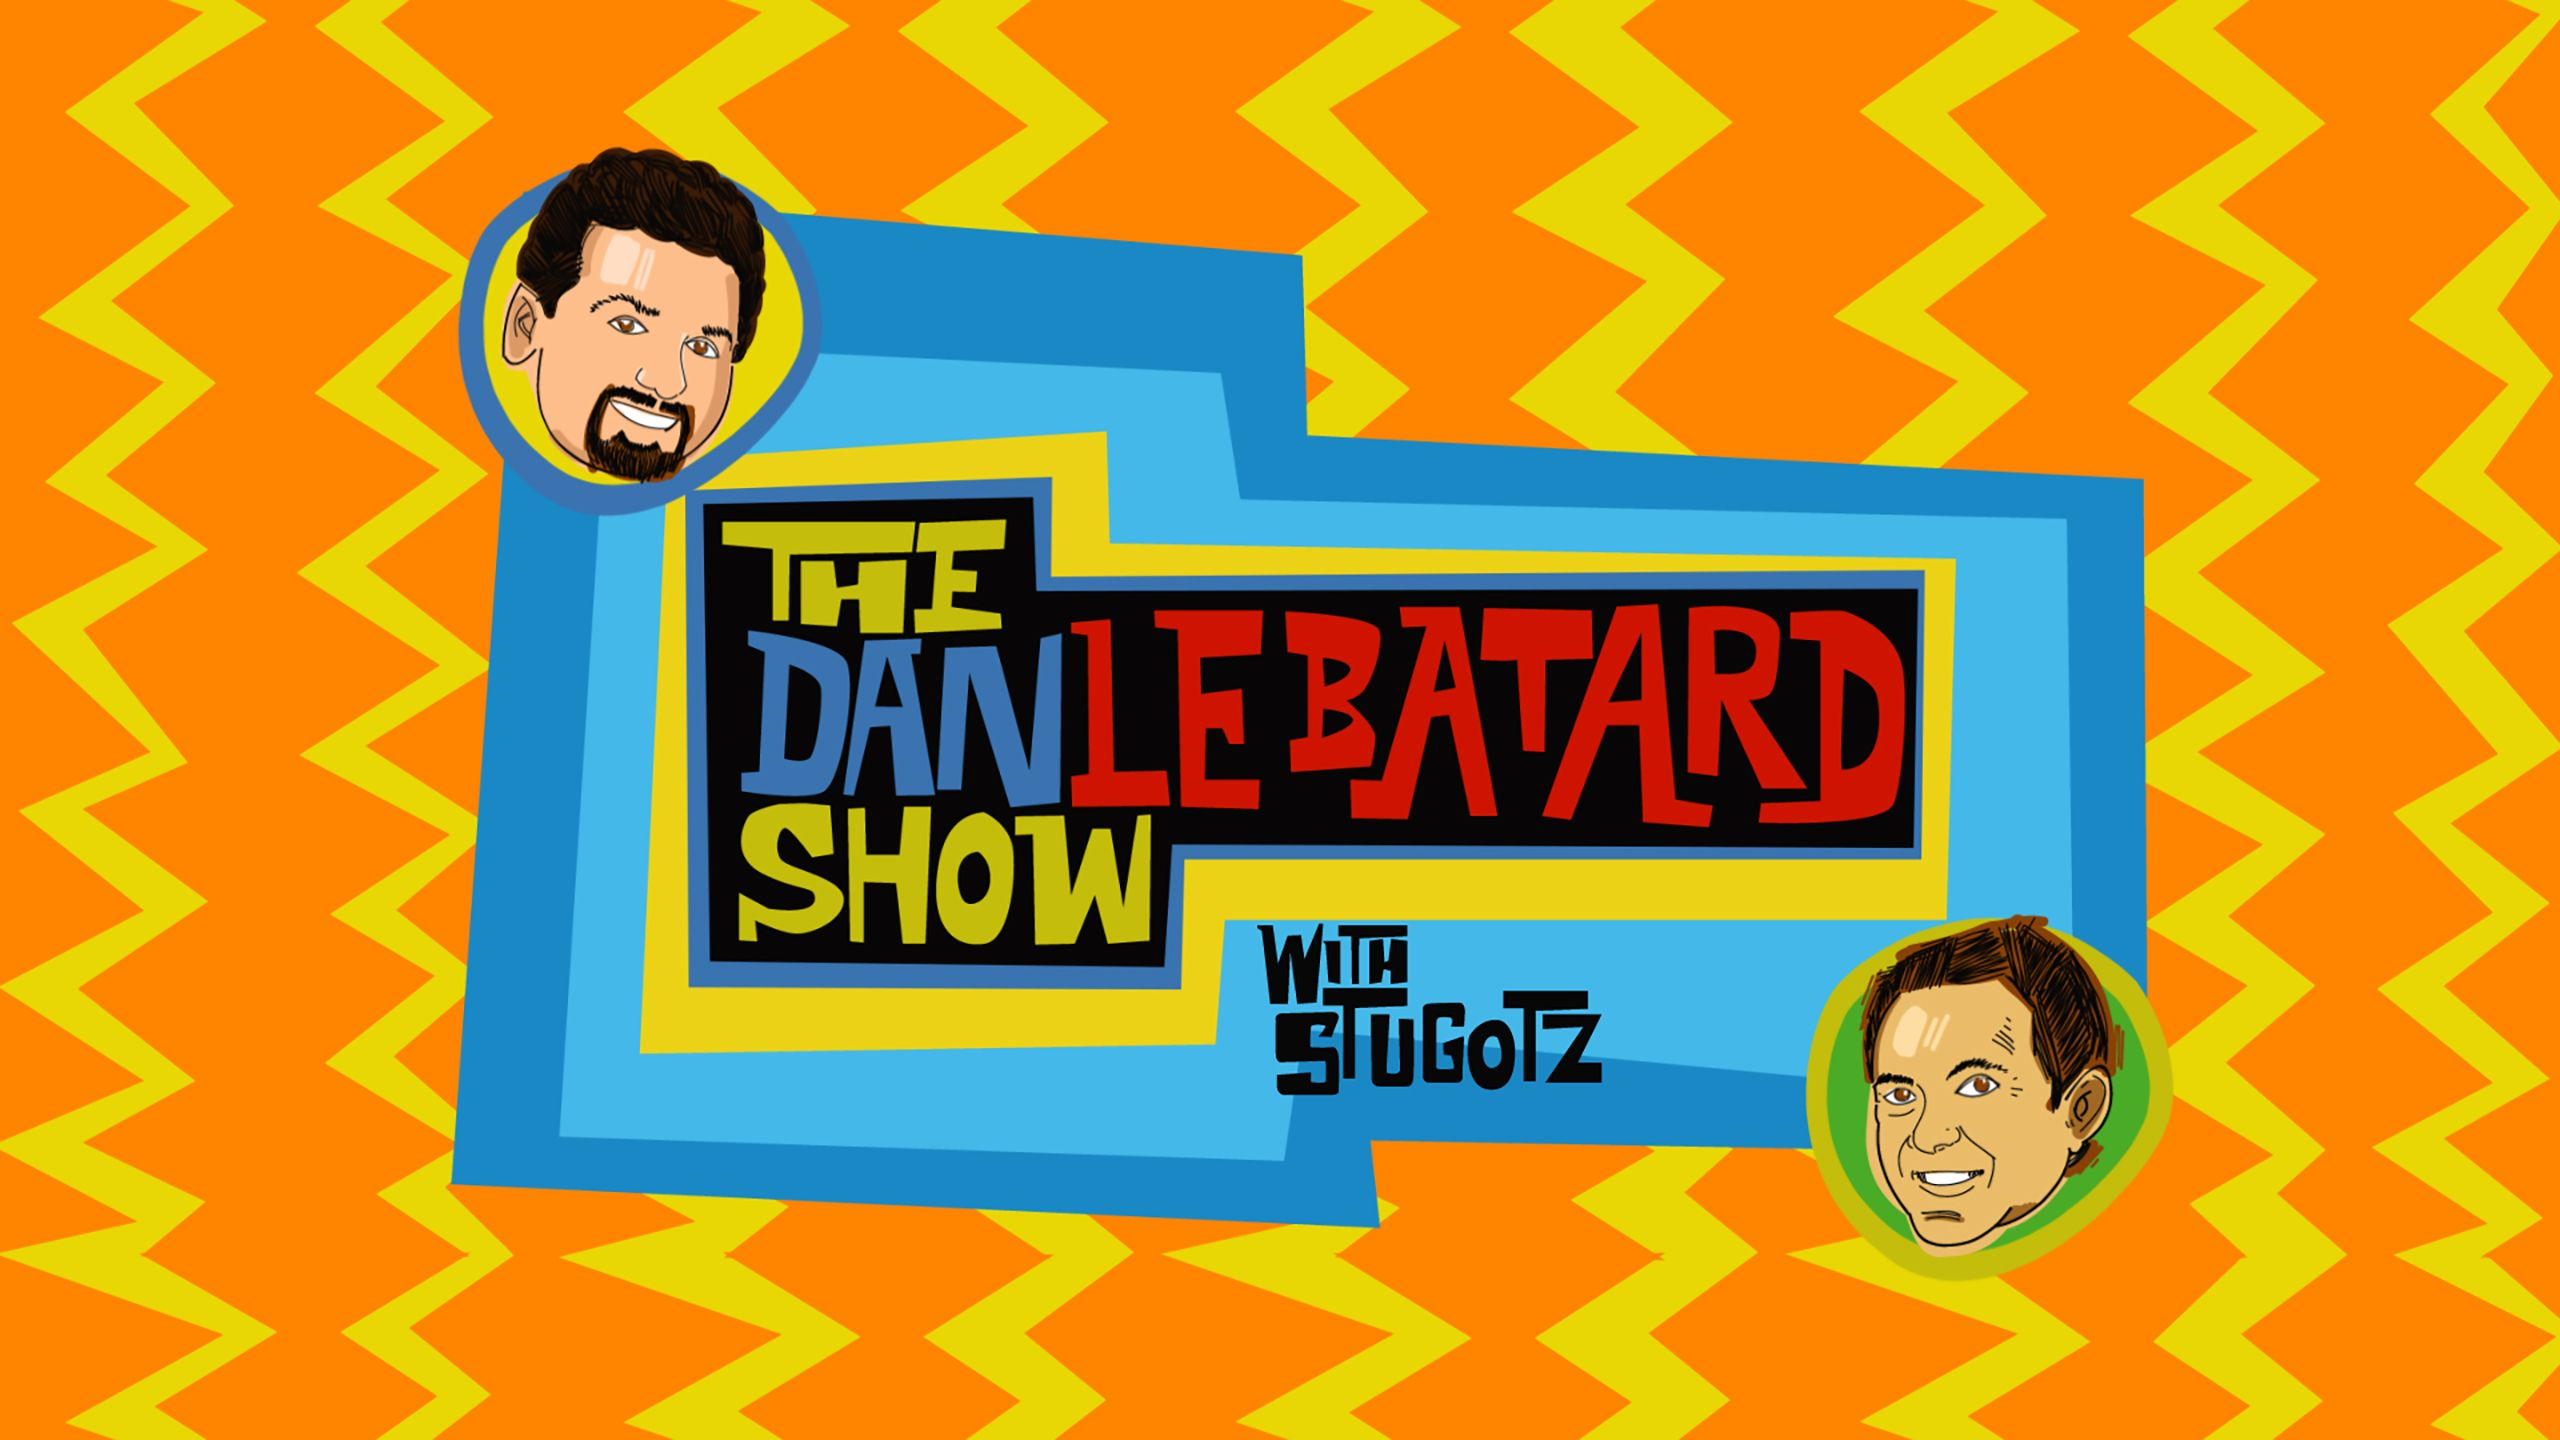 Mon, 12/11 - The Dan Le Batard Show with Stugotz Presented by Progressive